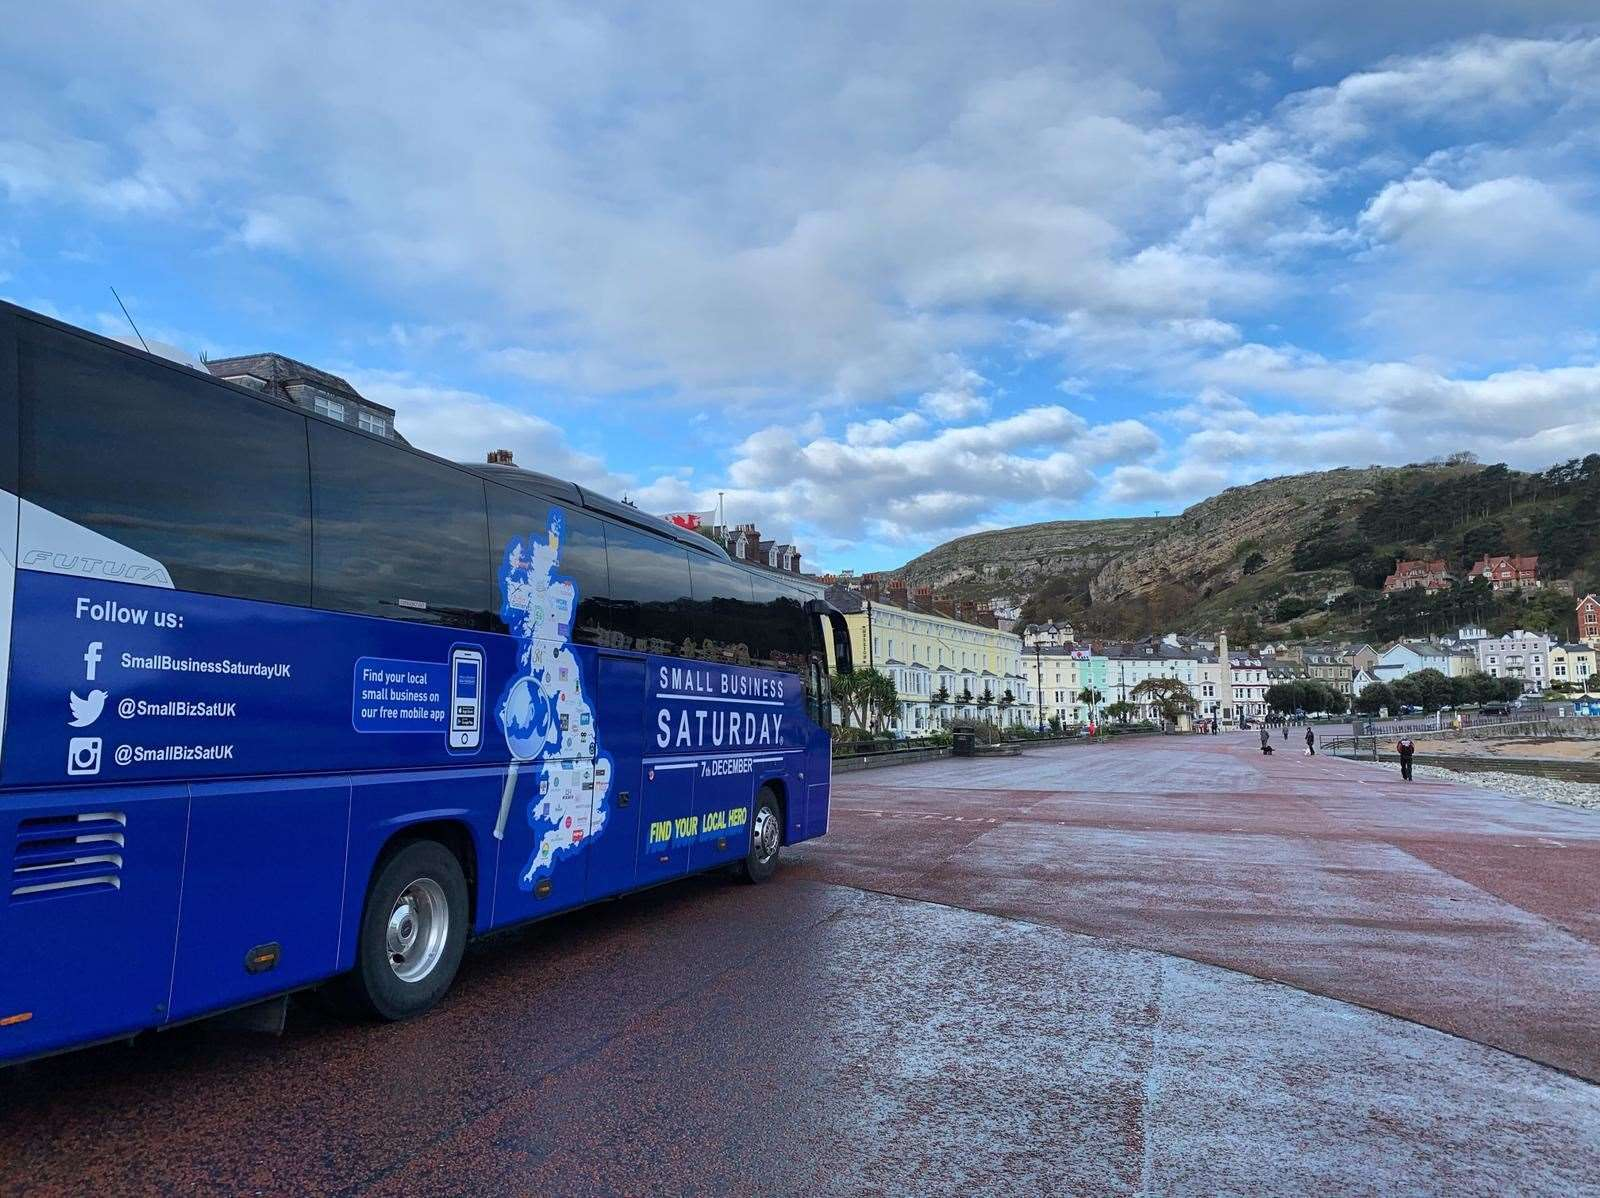 The Small Business Saturday bus pulls into Llandudno in Wales